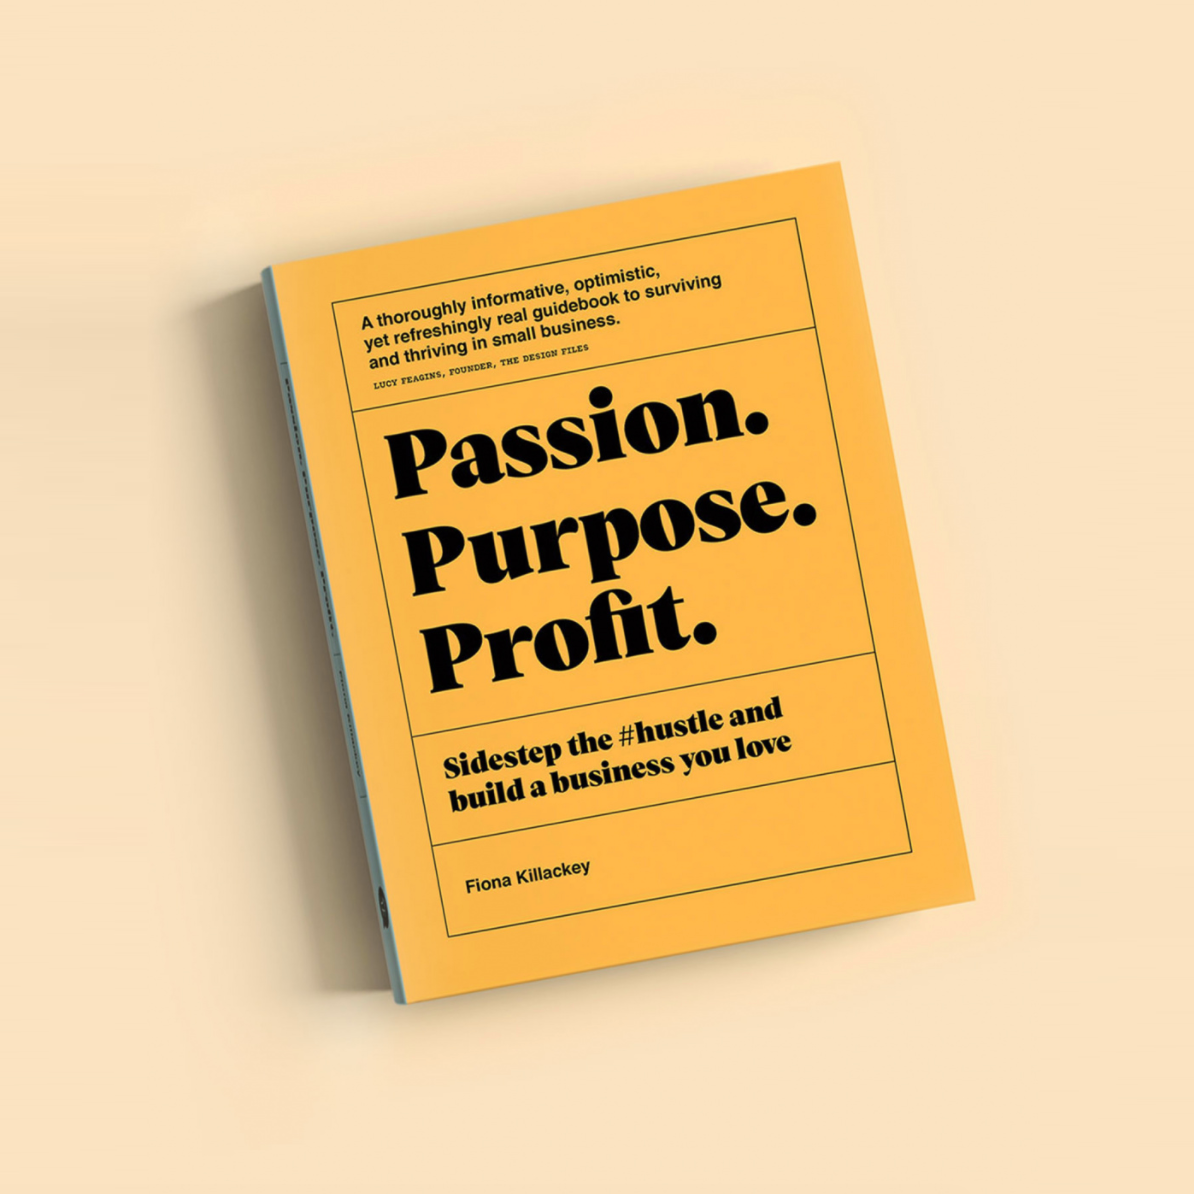 books-passion-purpose-profit